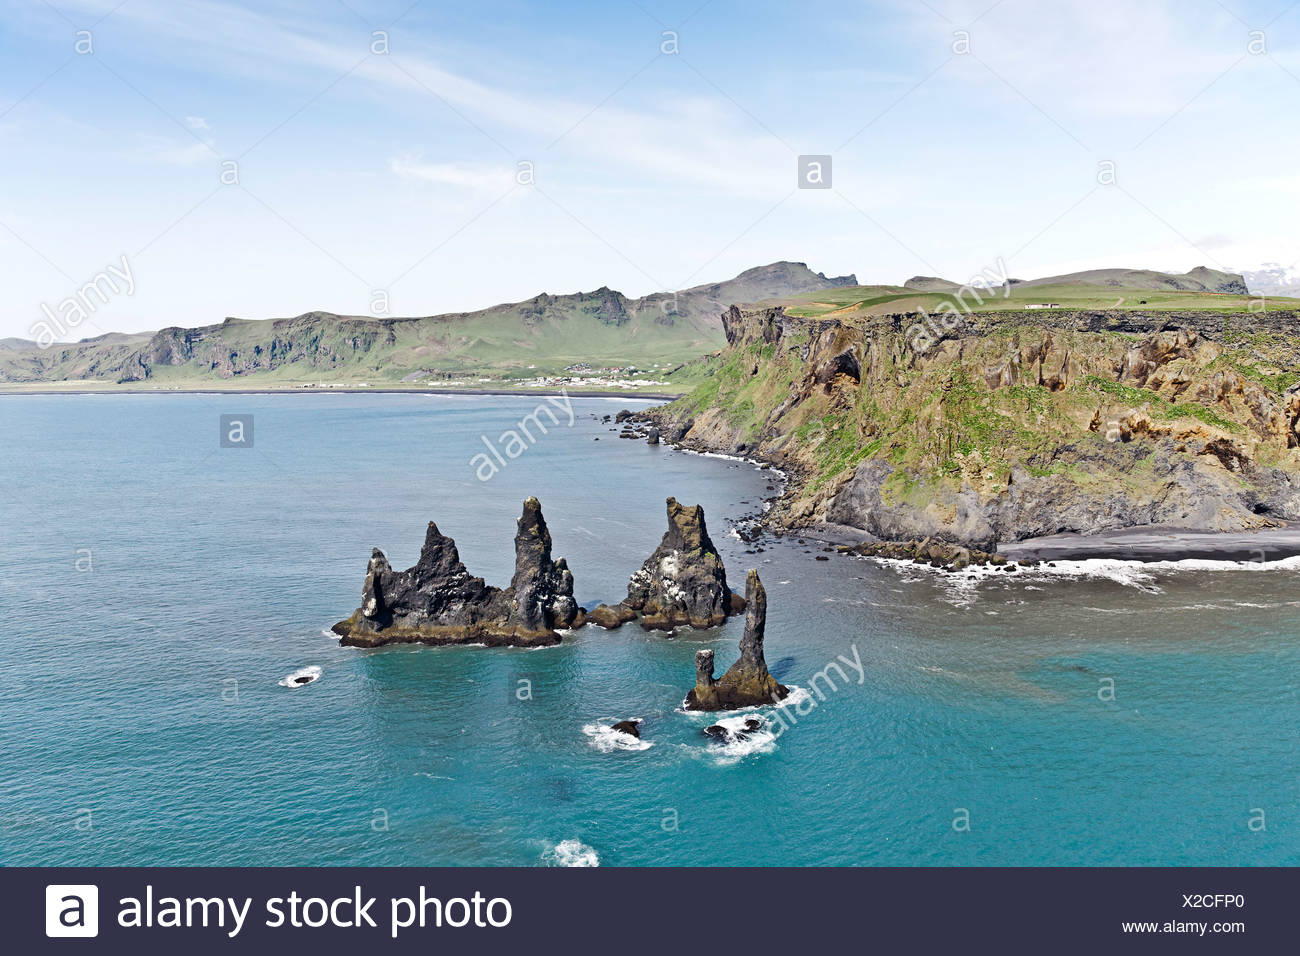 Aerial view, the three Skessudrangar rock spires, Skessudrangar, Landdrangar and Langhamrar off the southern coast of Iceland - Stock Image